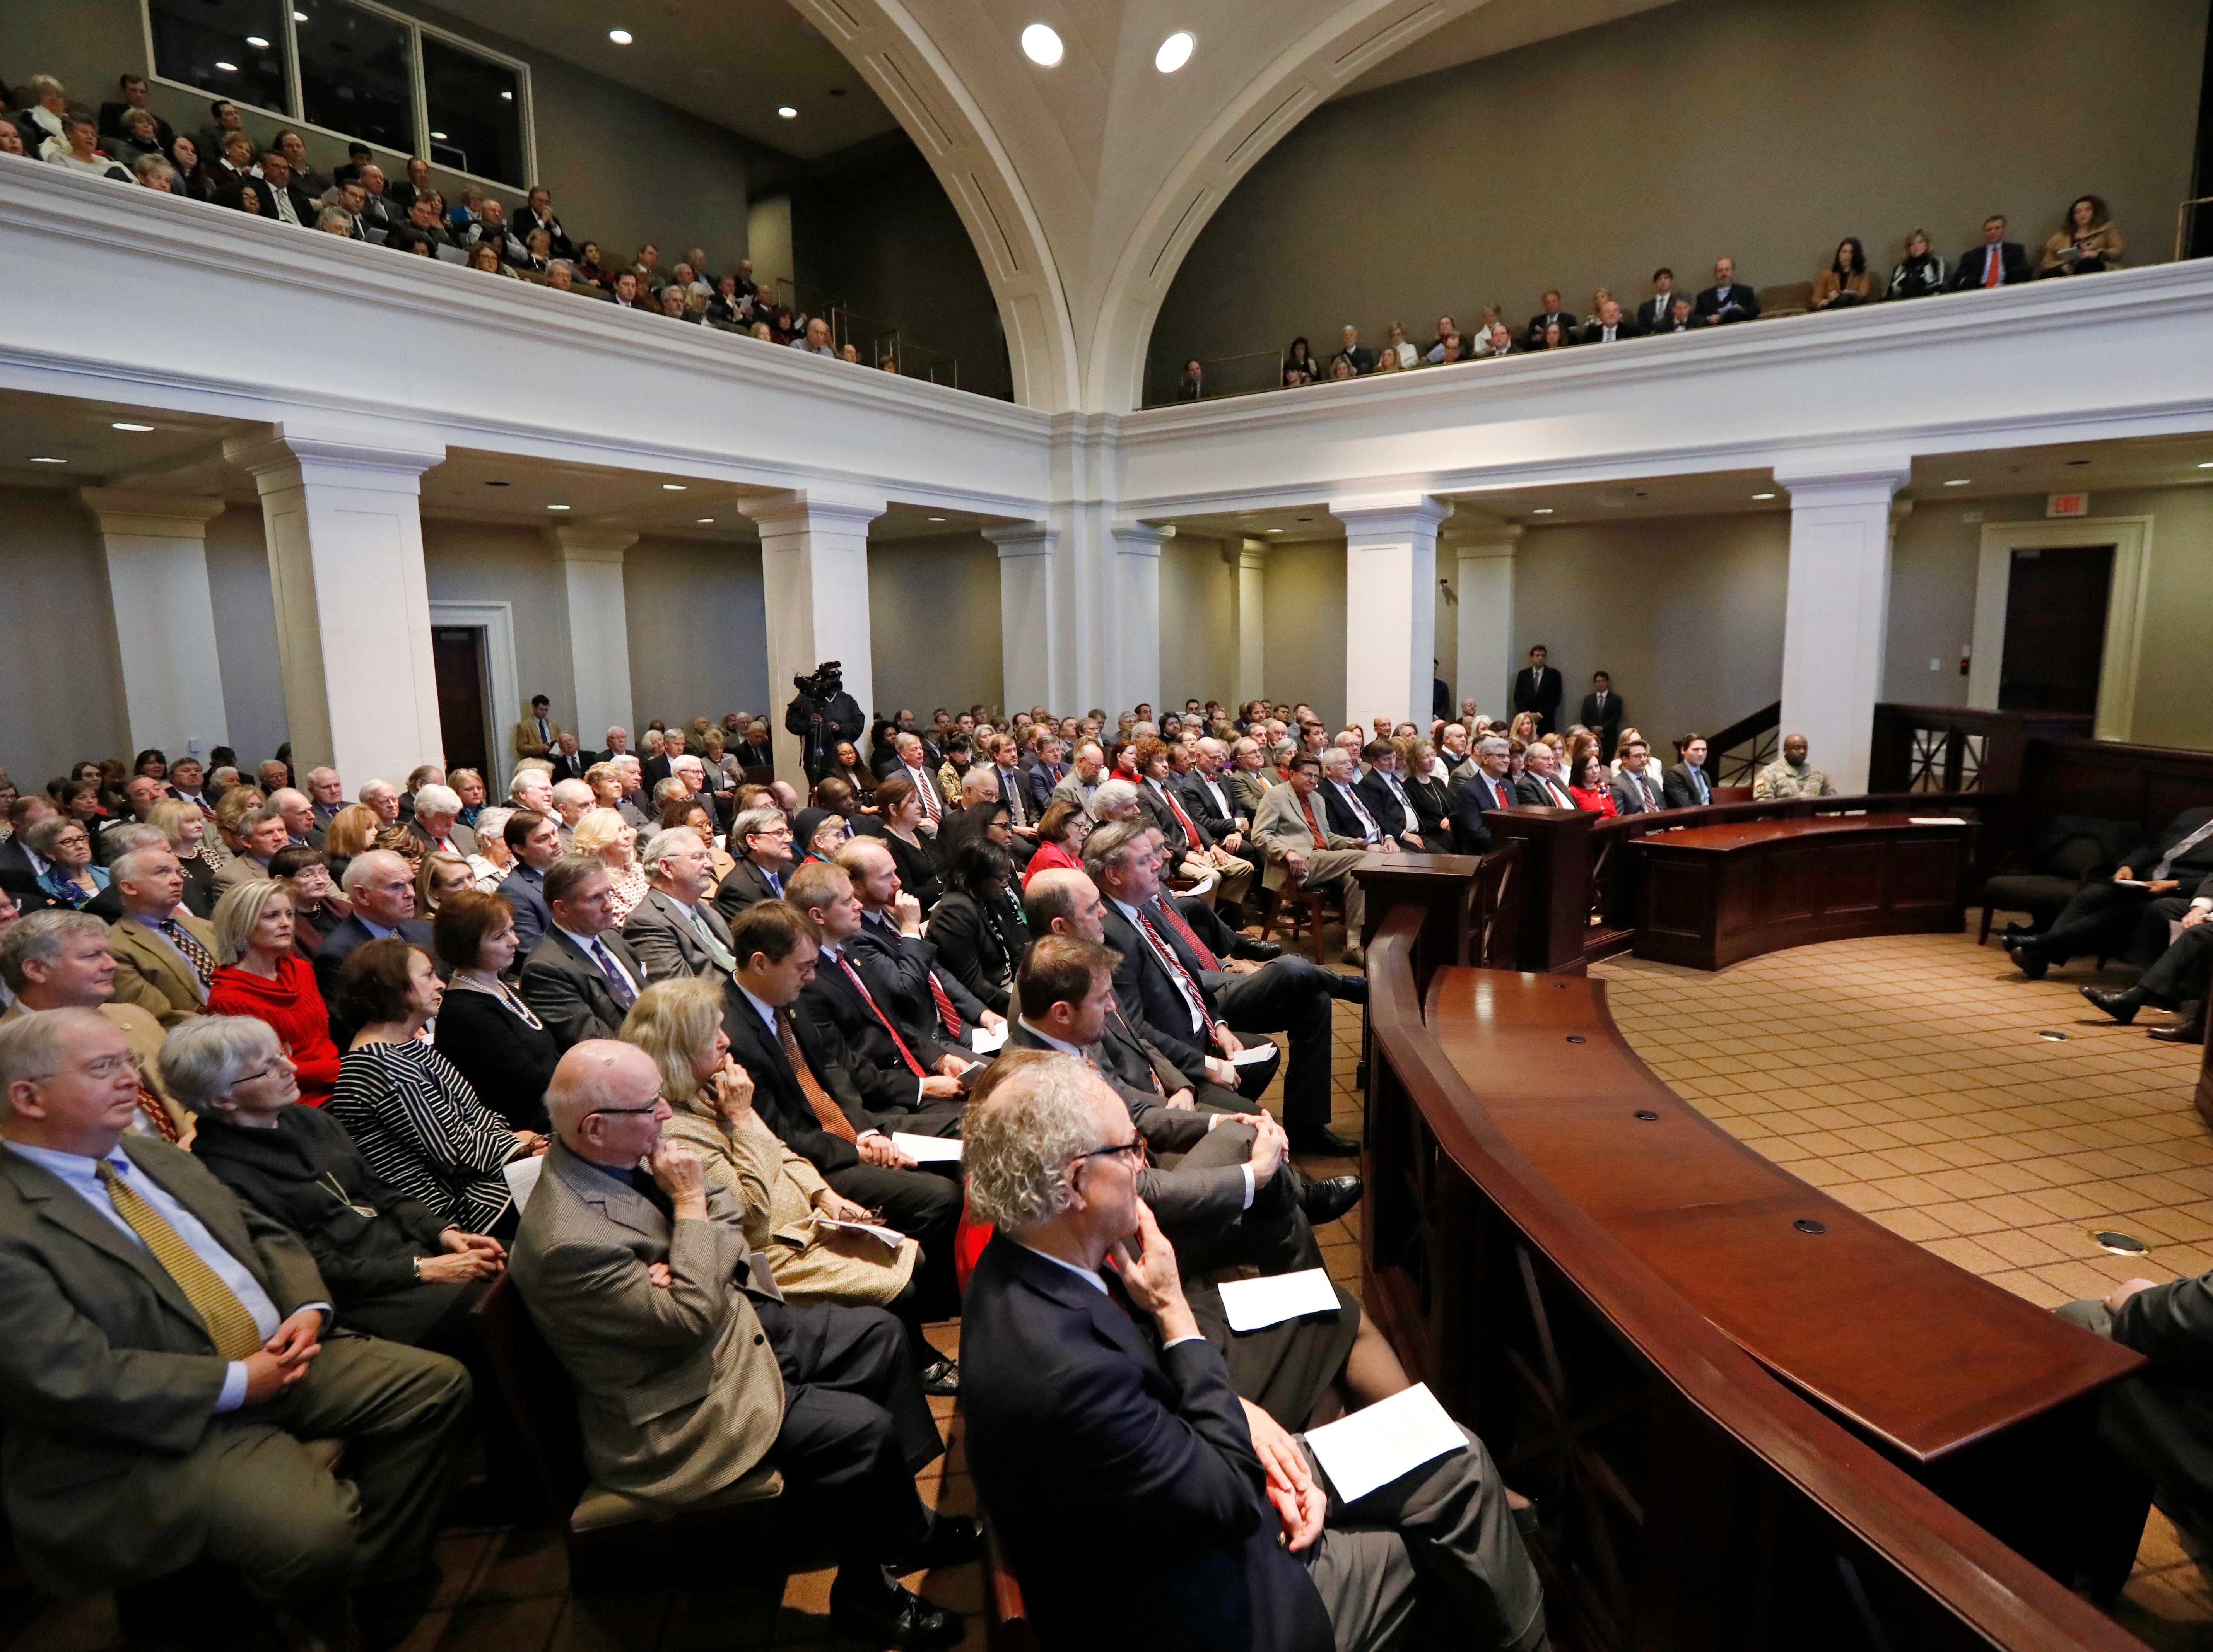 A filled chamber witnesses Mississippi Supreme Court Chief Justice William L. Waller Jr.'s retirement ceremony in the state Supreme Court chambers in Jackson, Miss., Friday, Jan. 25, 2019. Waller officially retires on January 31 after more than 21 years of service on the Supreme Court and 10 years as Chief Justice. (AP Photo/Rogelio V. Solis)